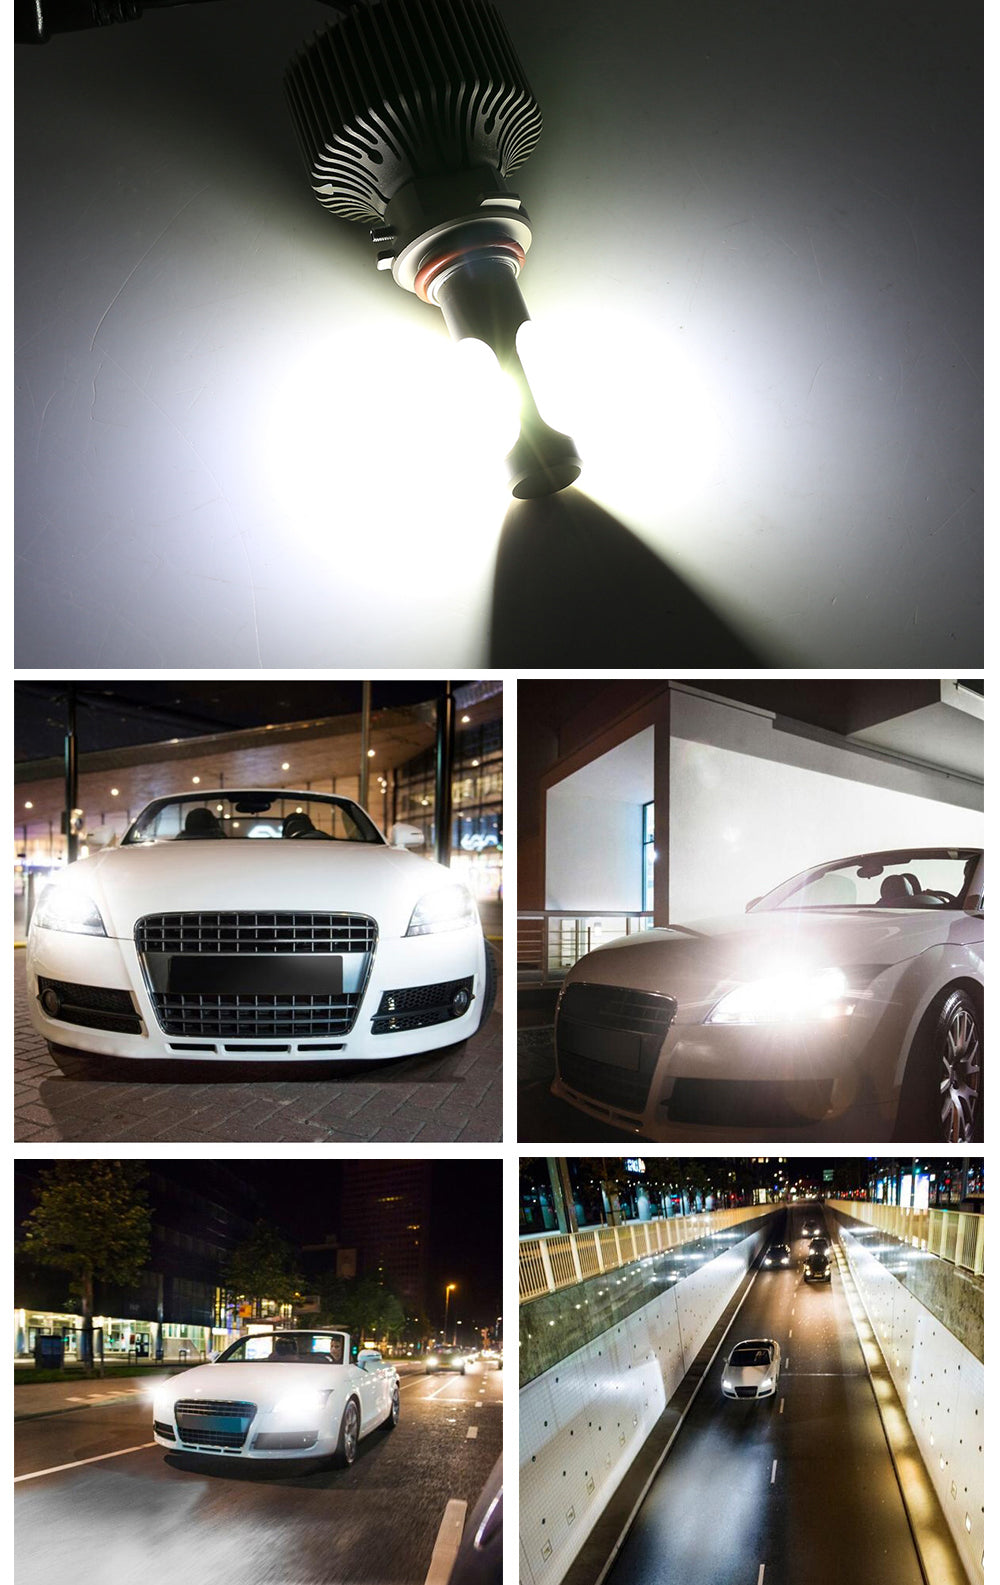 NIGHTEYE 60W 9000LM 9006 HB4 LED Headlight Kit Car Driving Bulbs White US STOCK